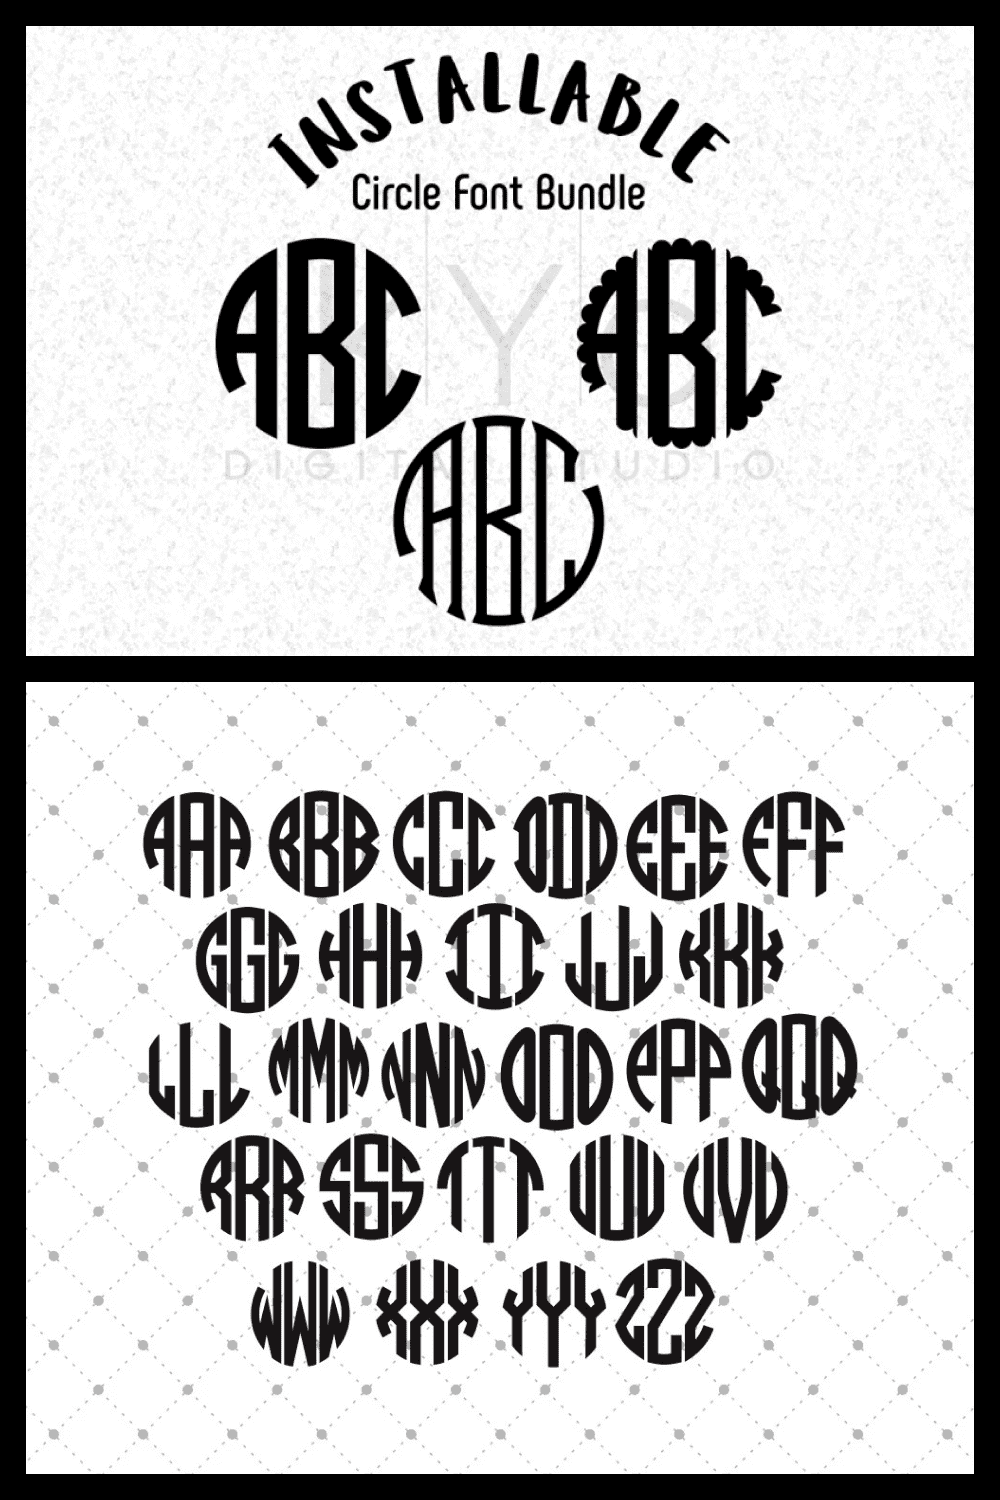 Font in circle.